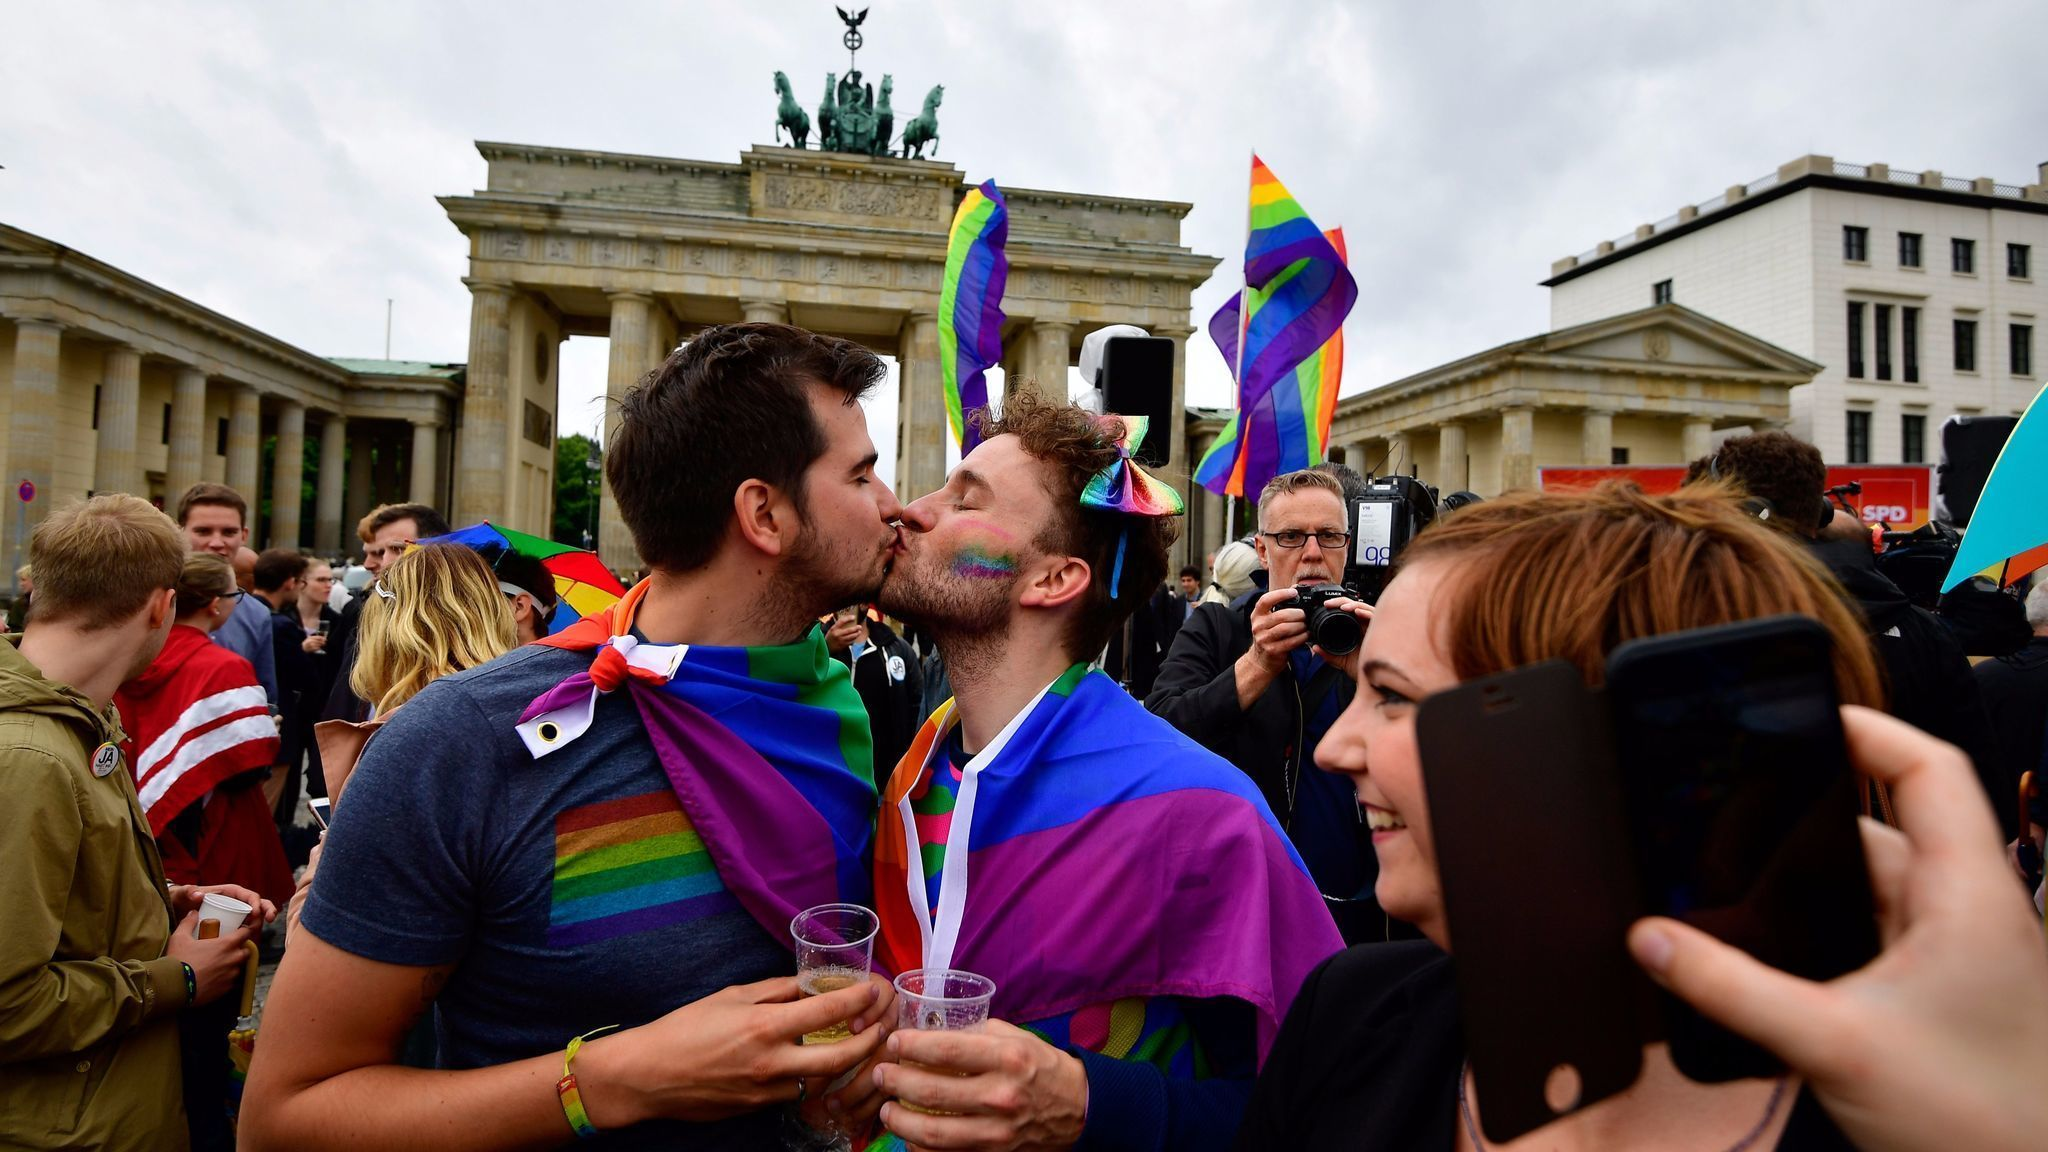 from Rashad is gay marriage legal in germany